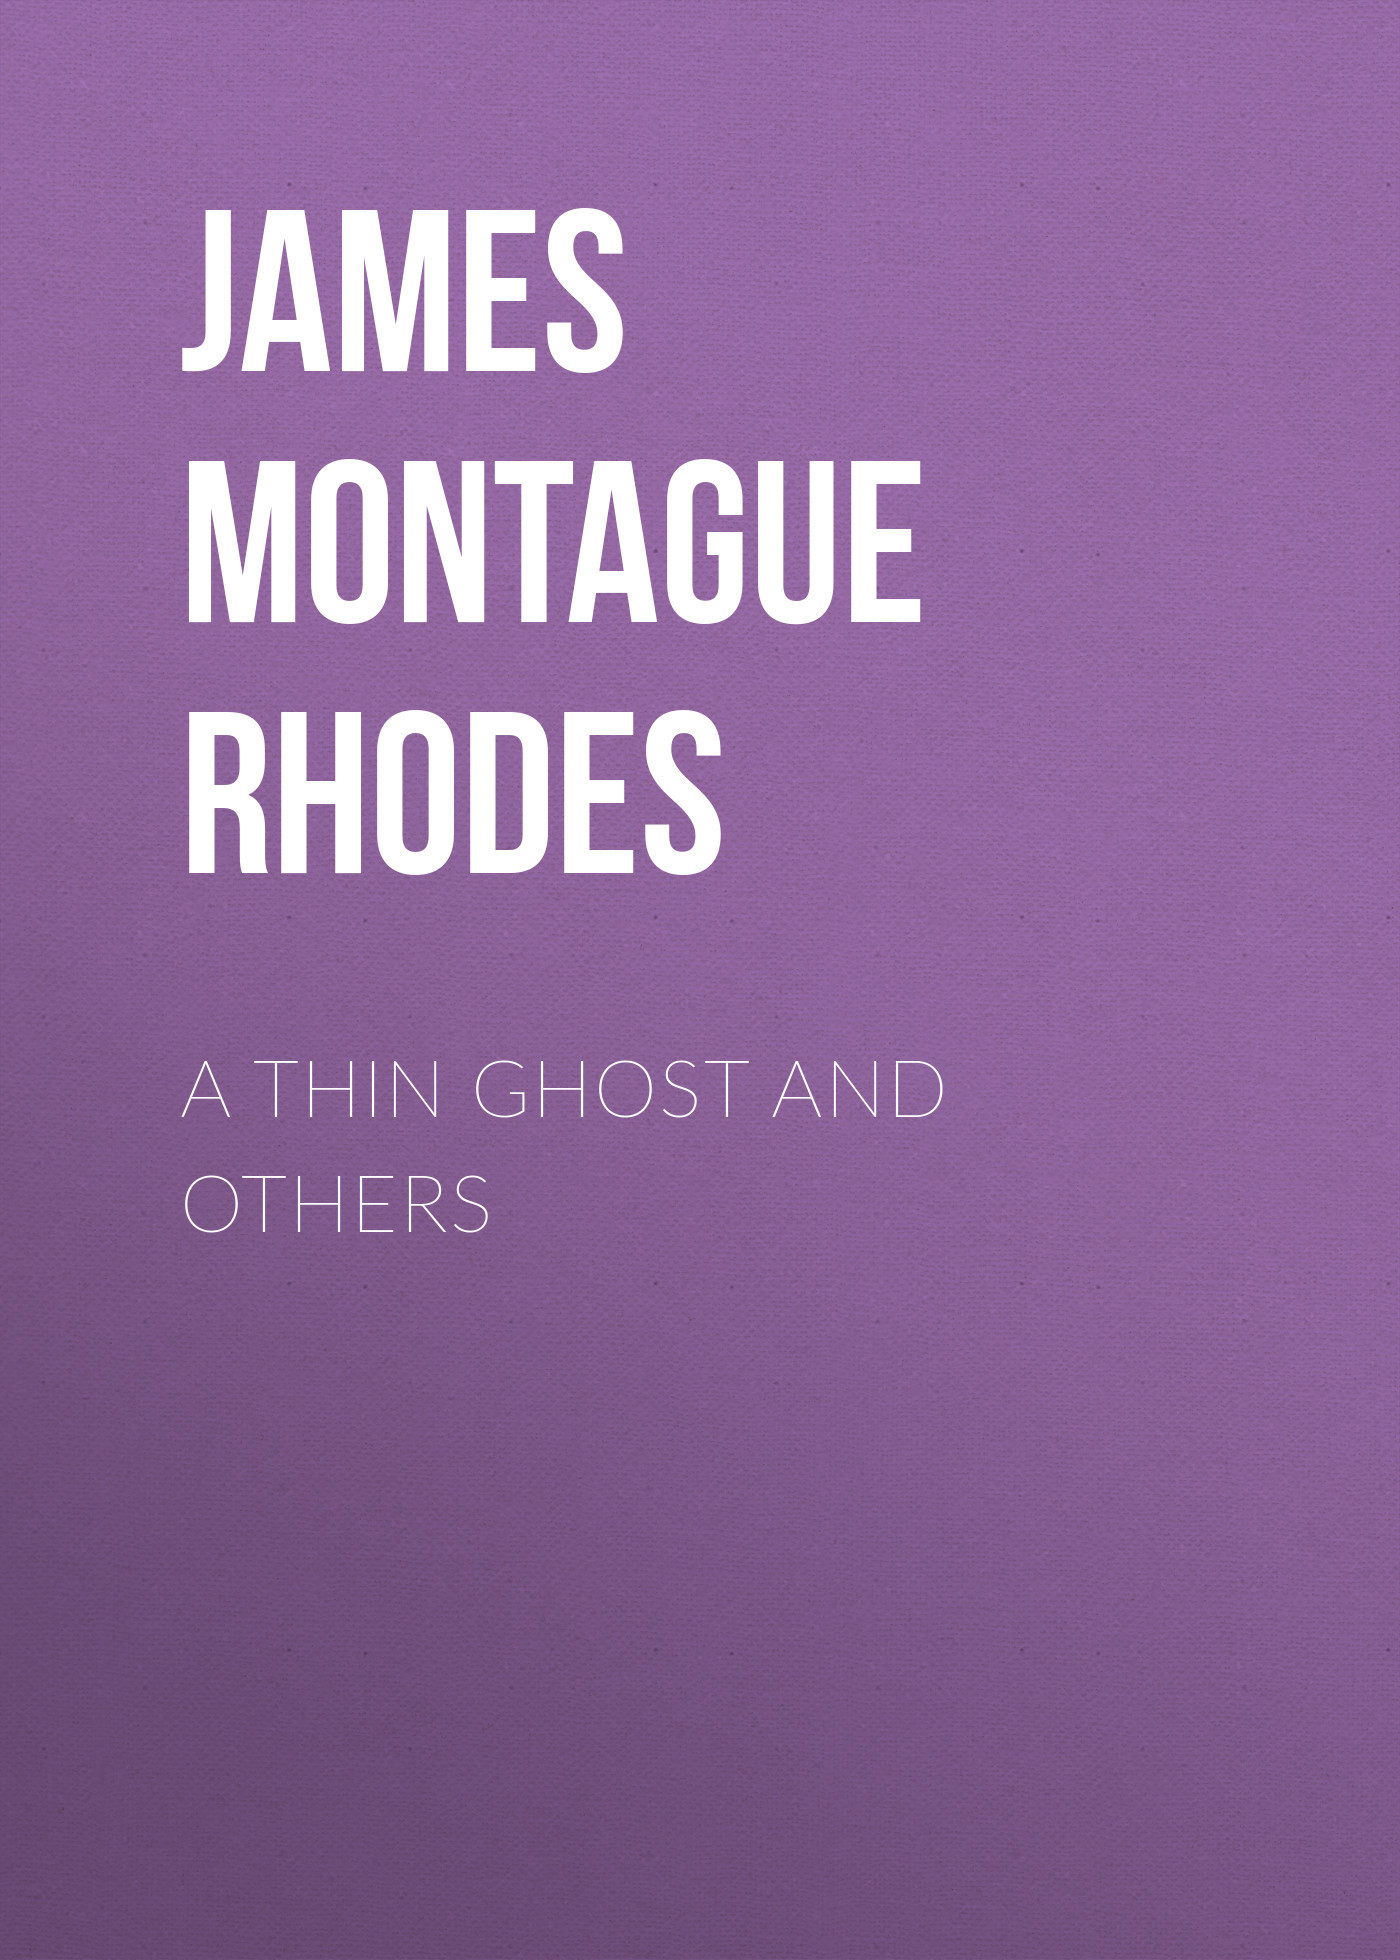 James Montague Rhodes A Thin Ghost and Others